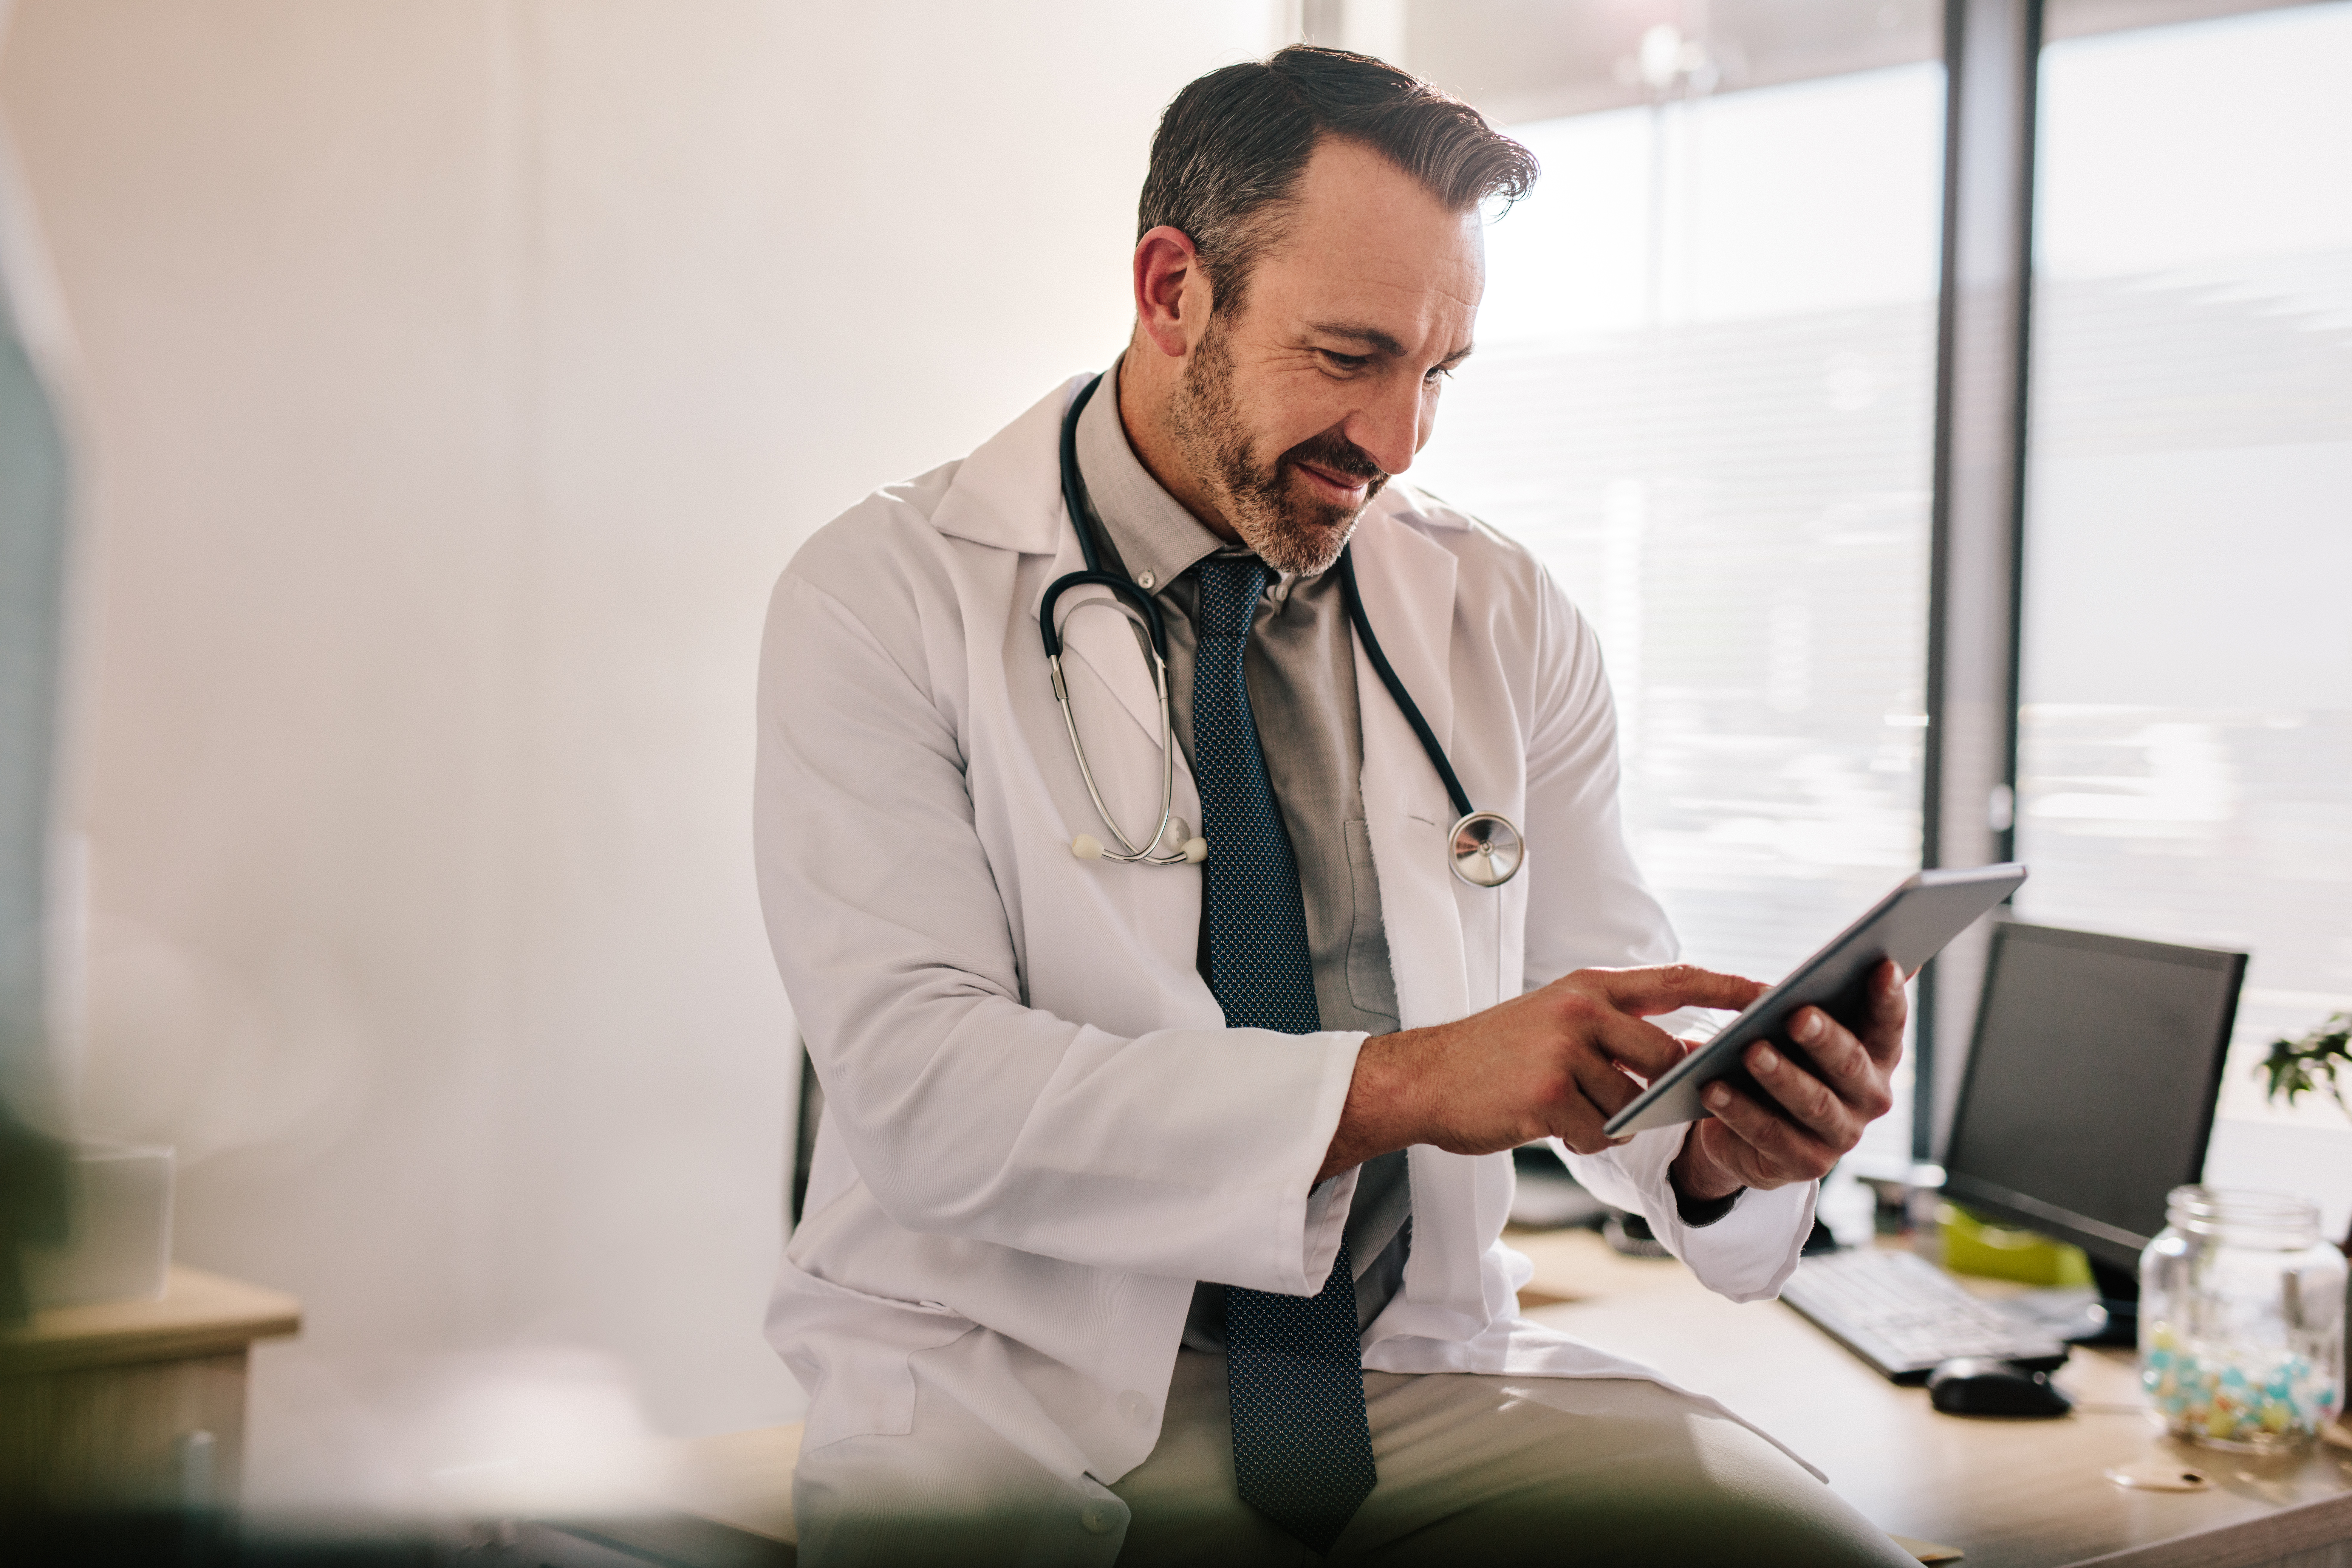 Doctor-using-digital-tablet-at-his-clinic-1132442656_7888x5259